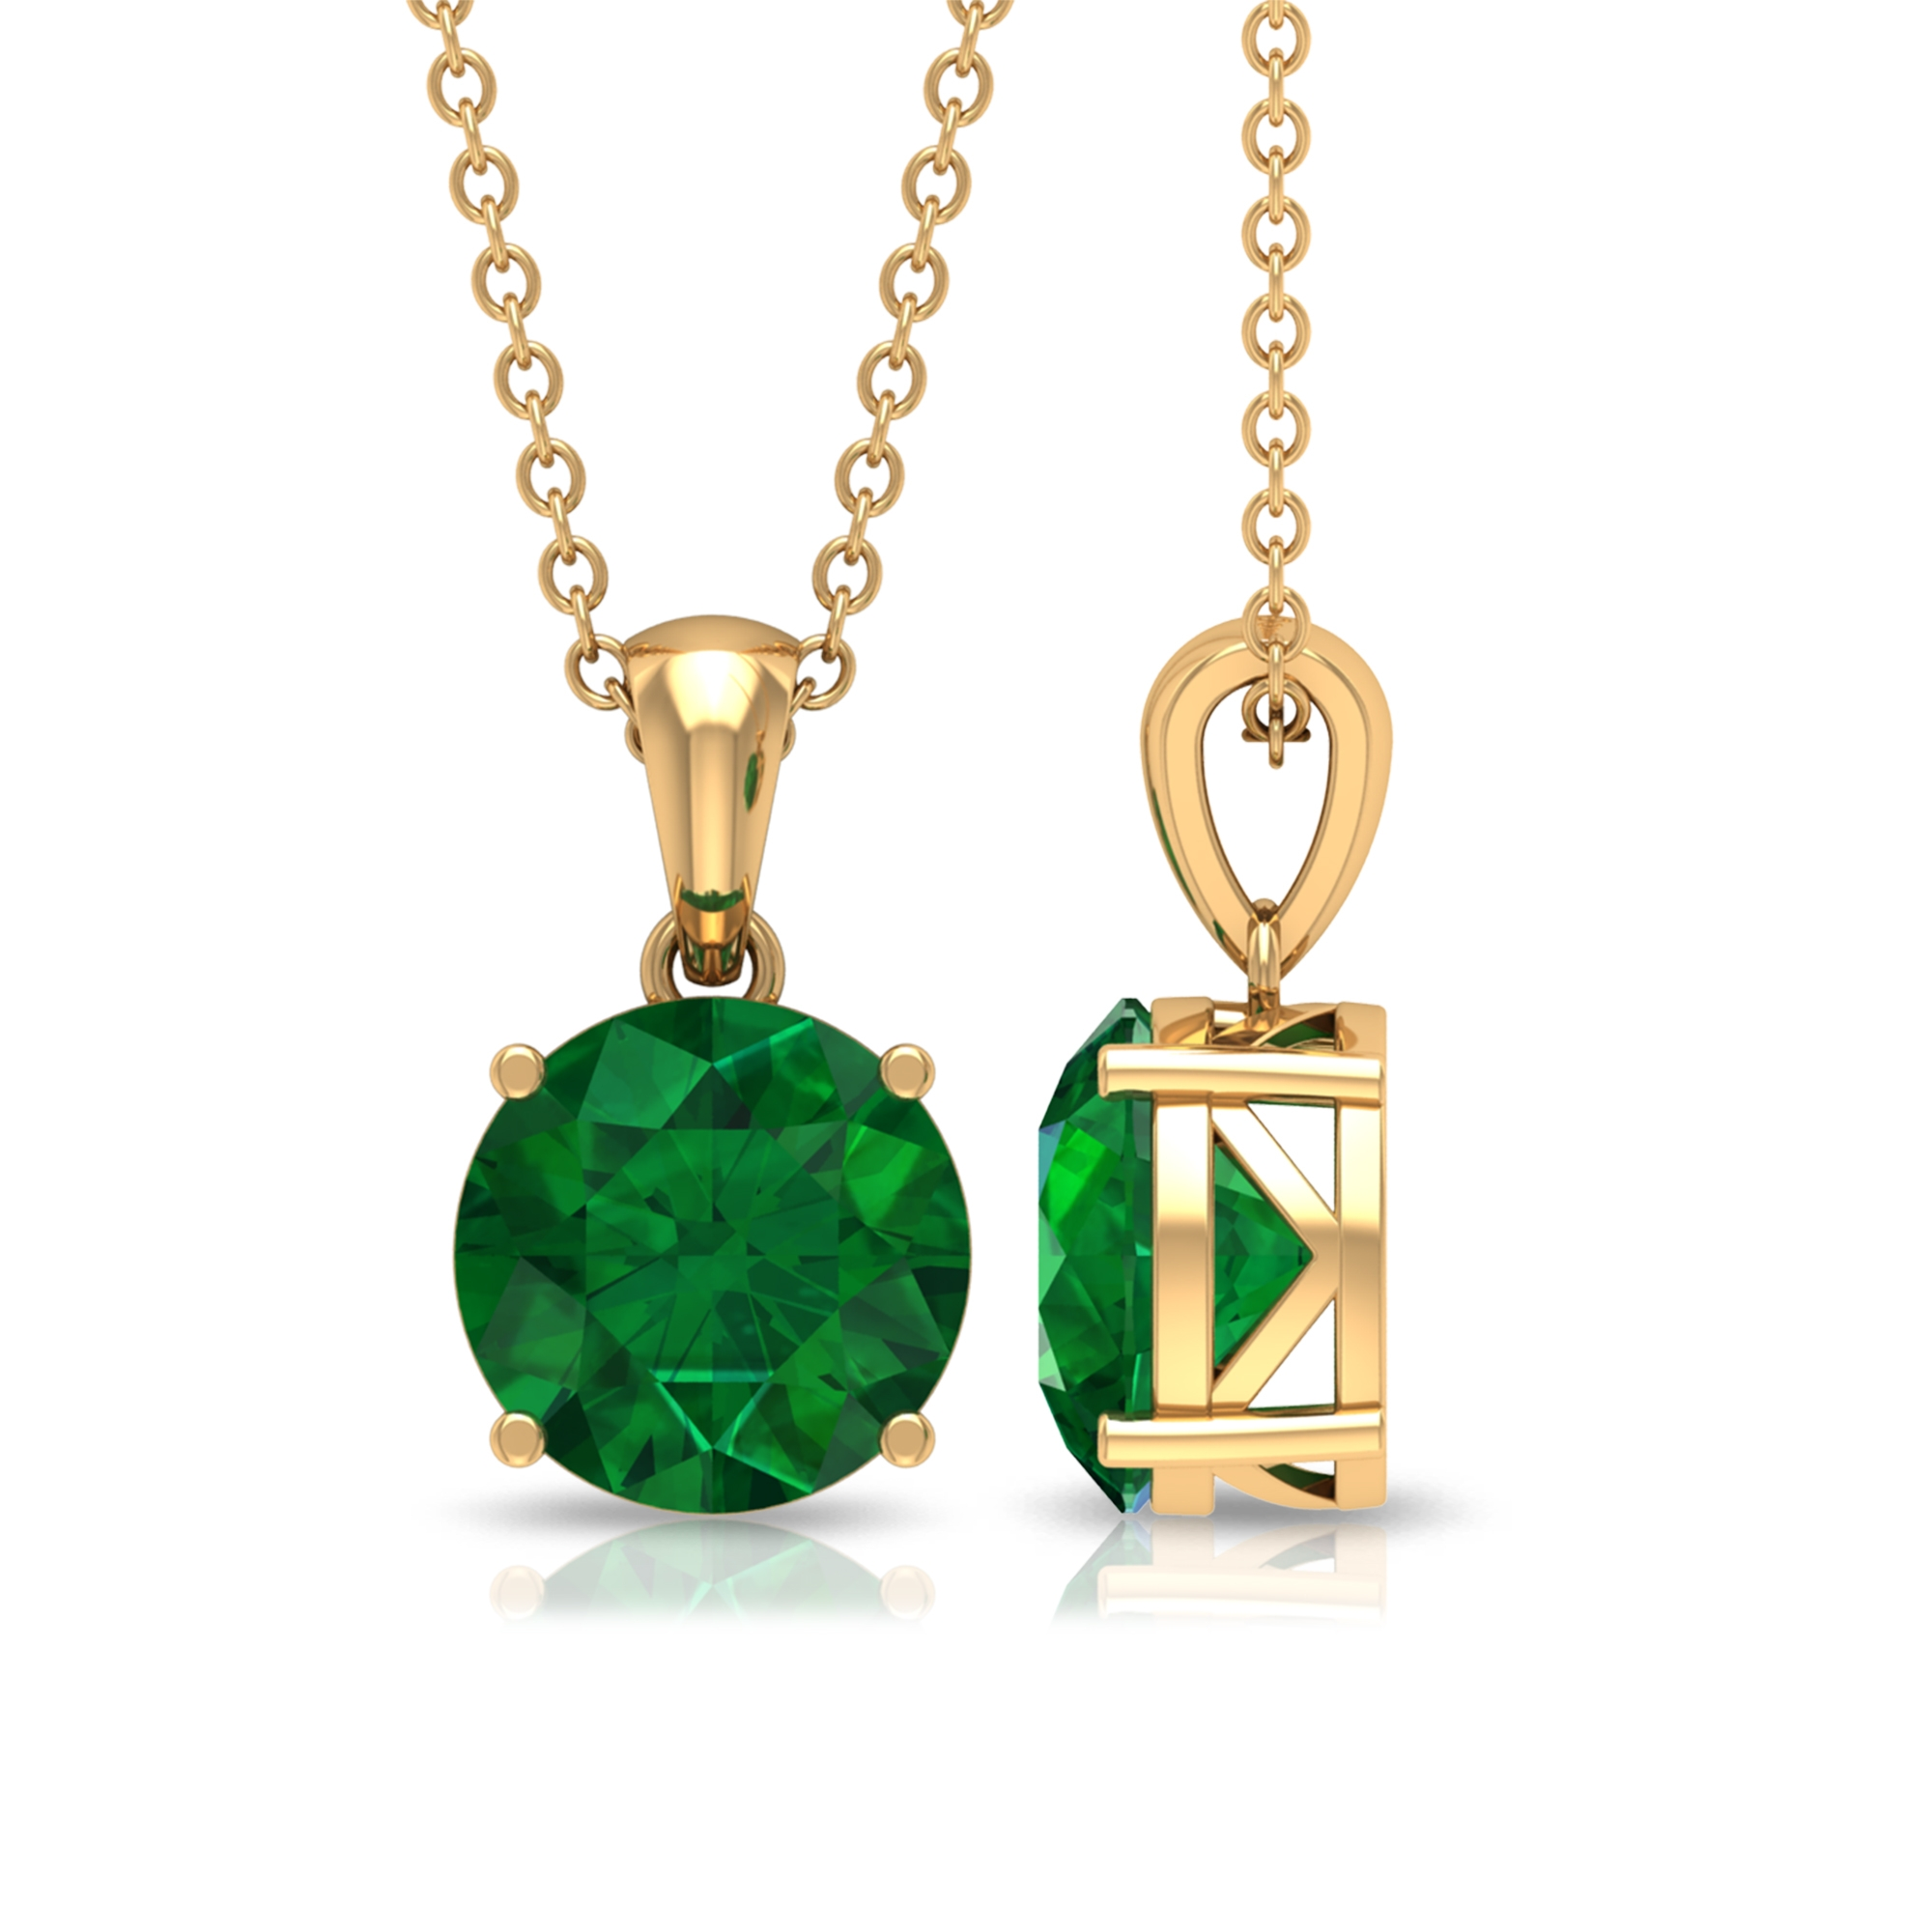 8 MM Round Cut Solitaire Emerald Pendant in Four Prong Setting